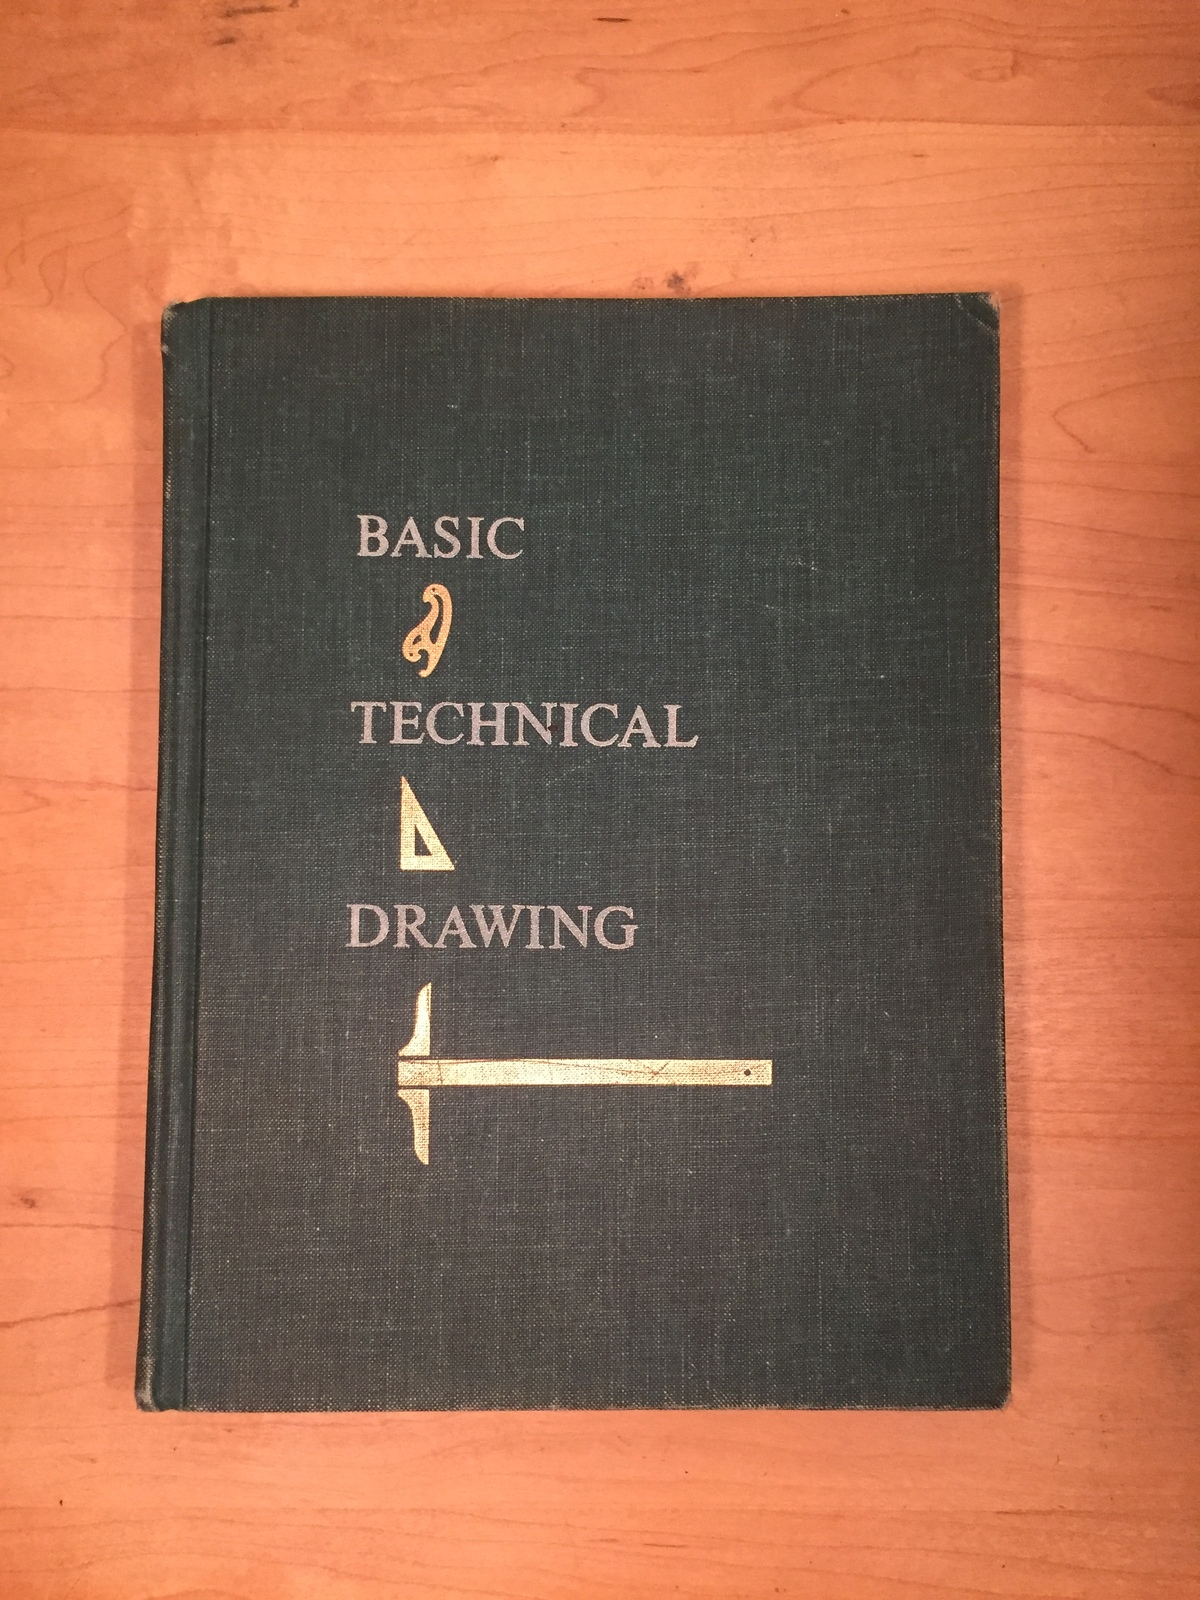 1962: Basic Technical Drawing textbook. By Henry Cecil Spencer